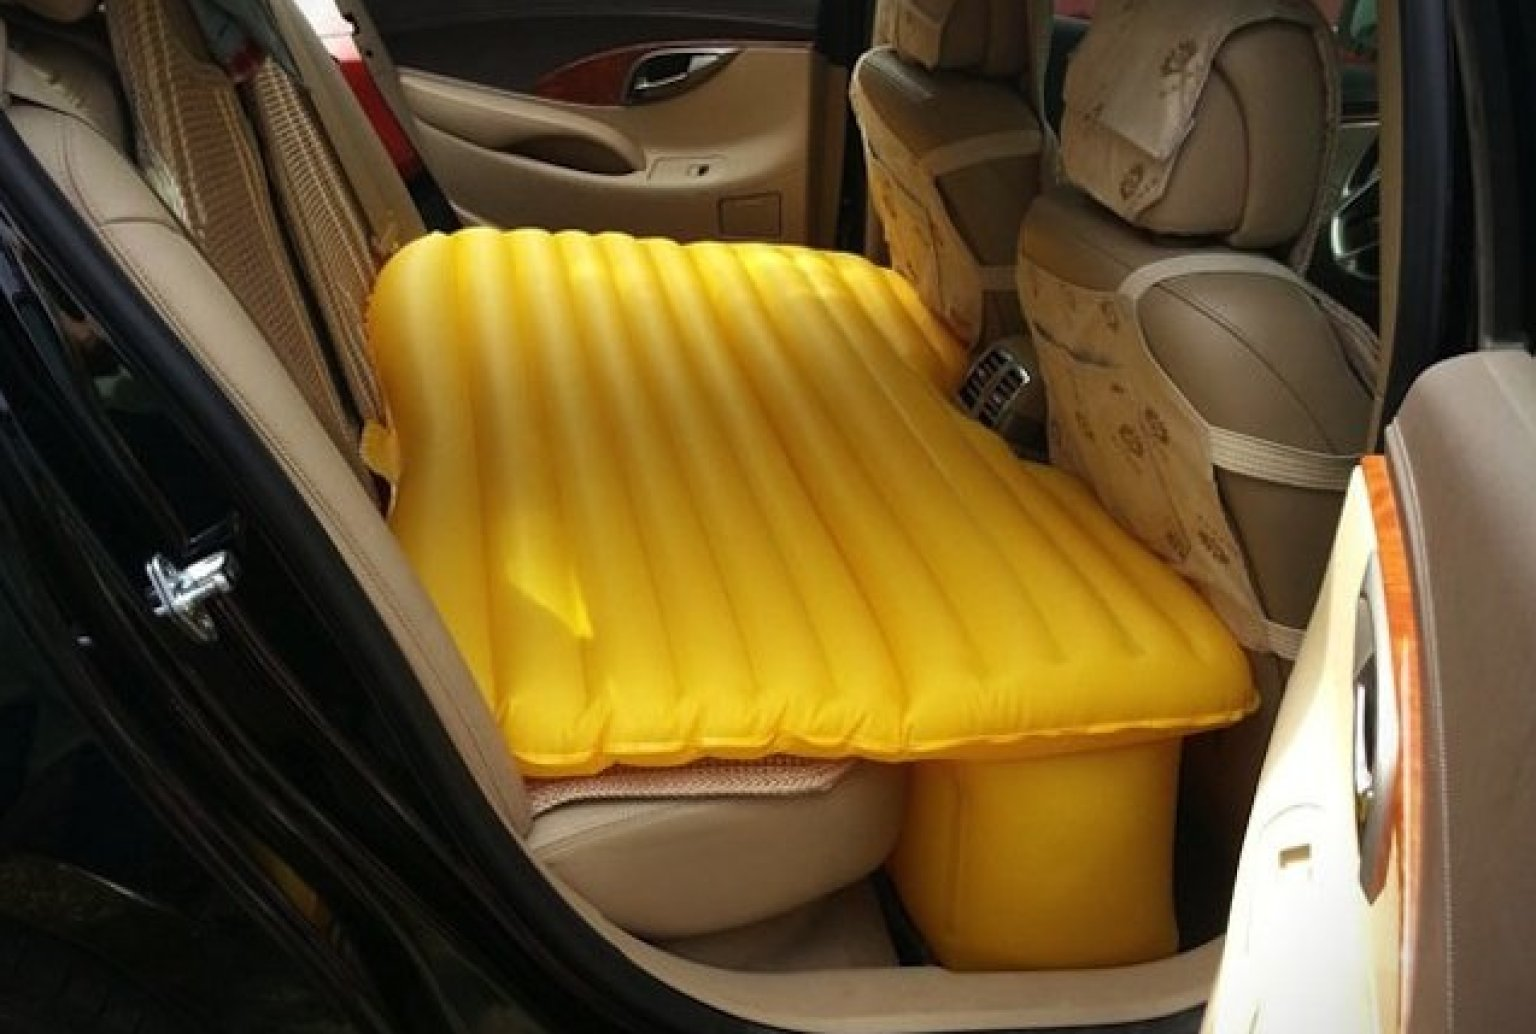 Back Seat Bed Fuloon Inflatable Car Mattress Turns Backseat Into Full Sized Bed